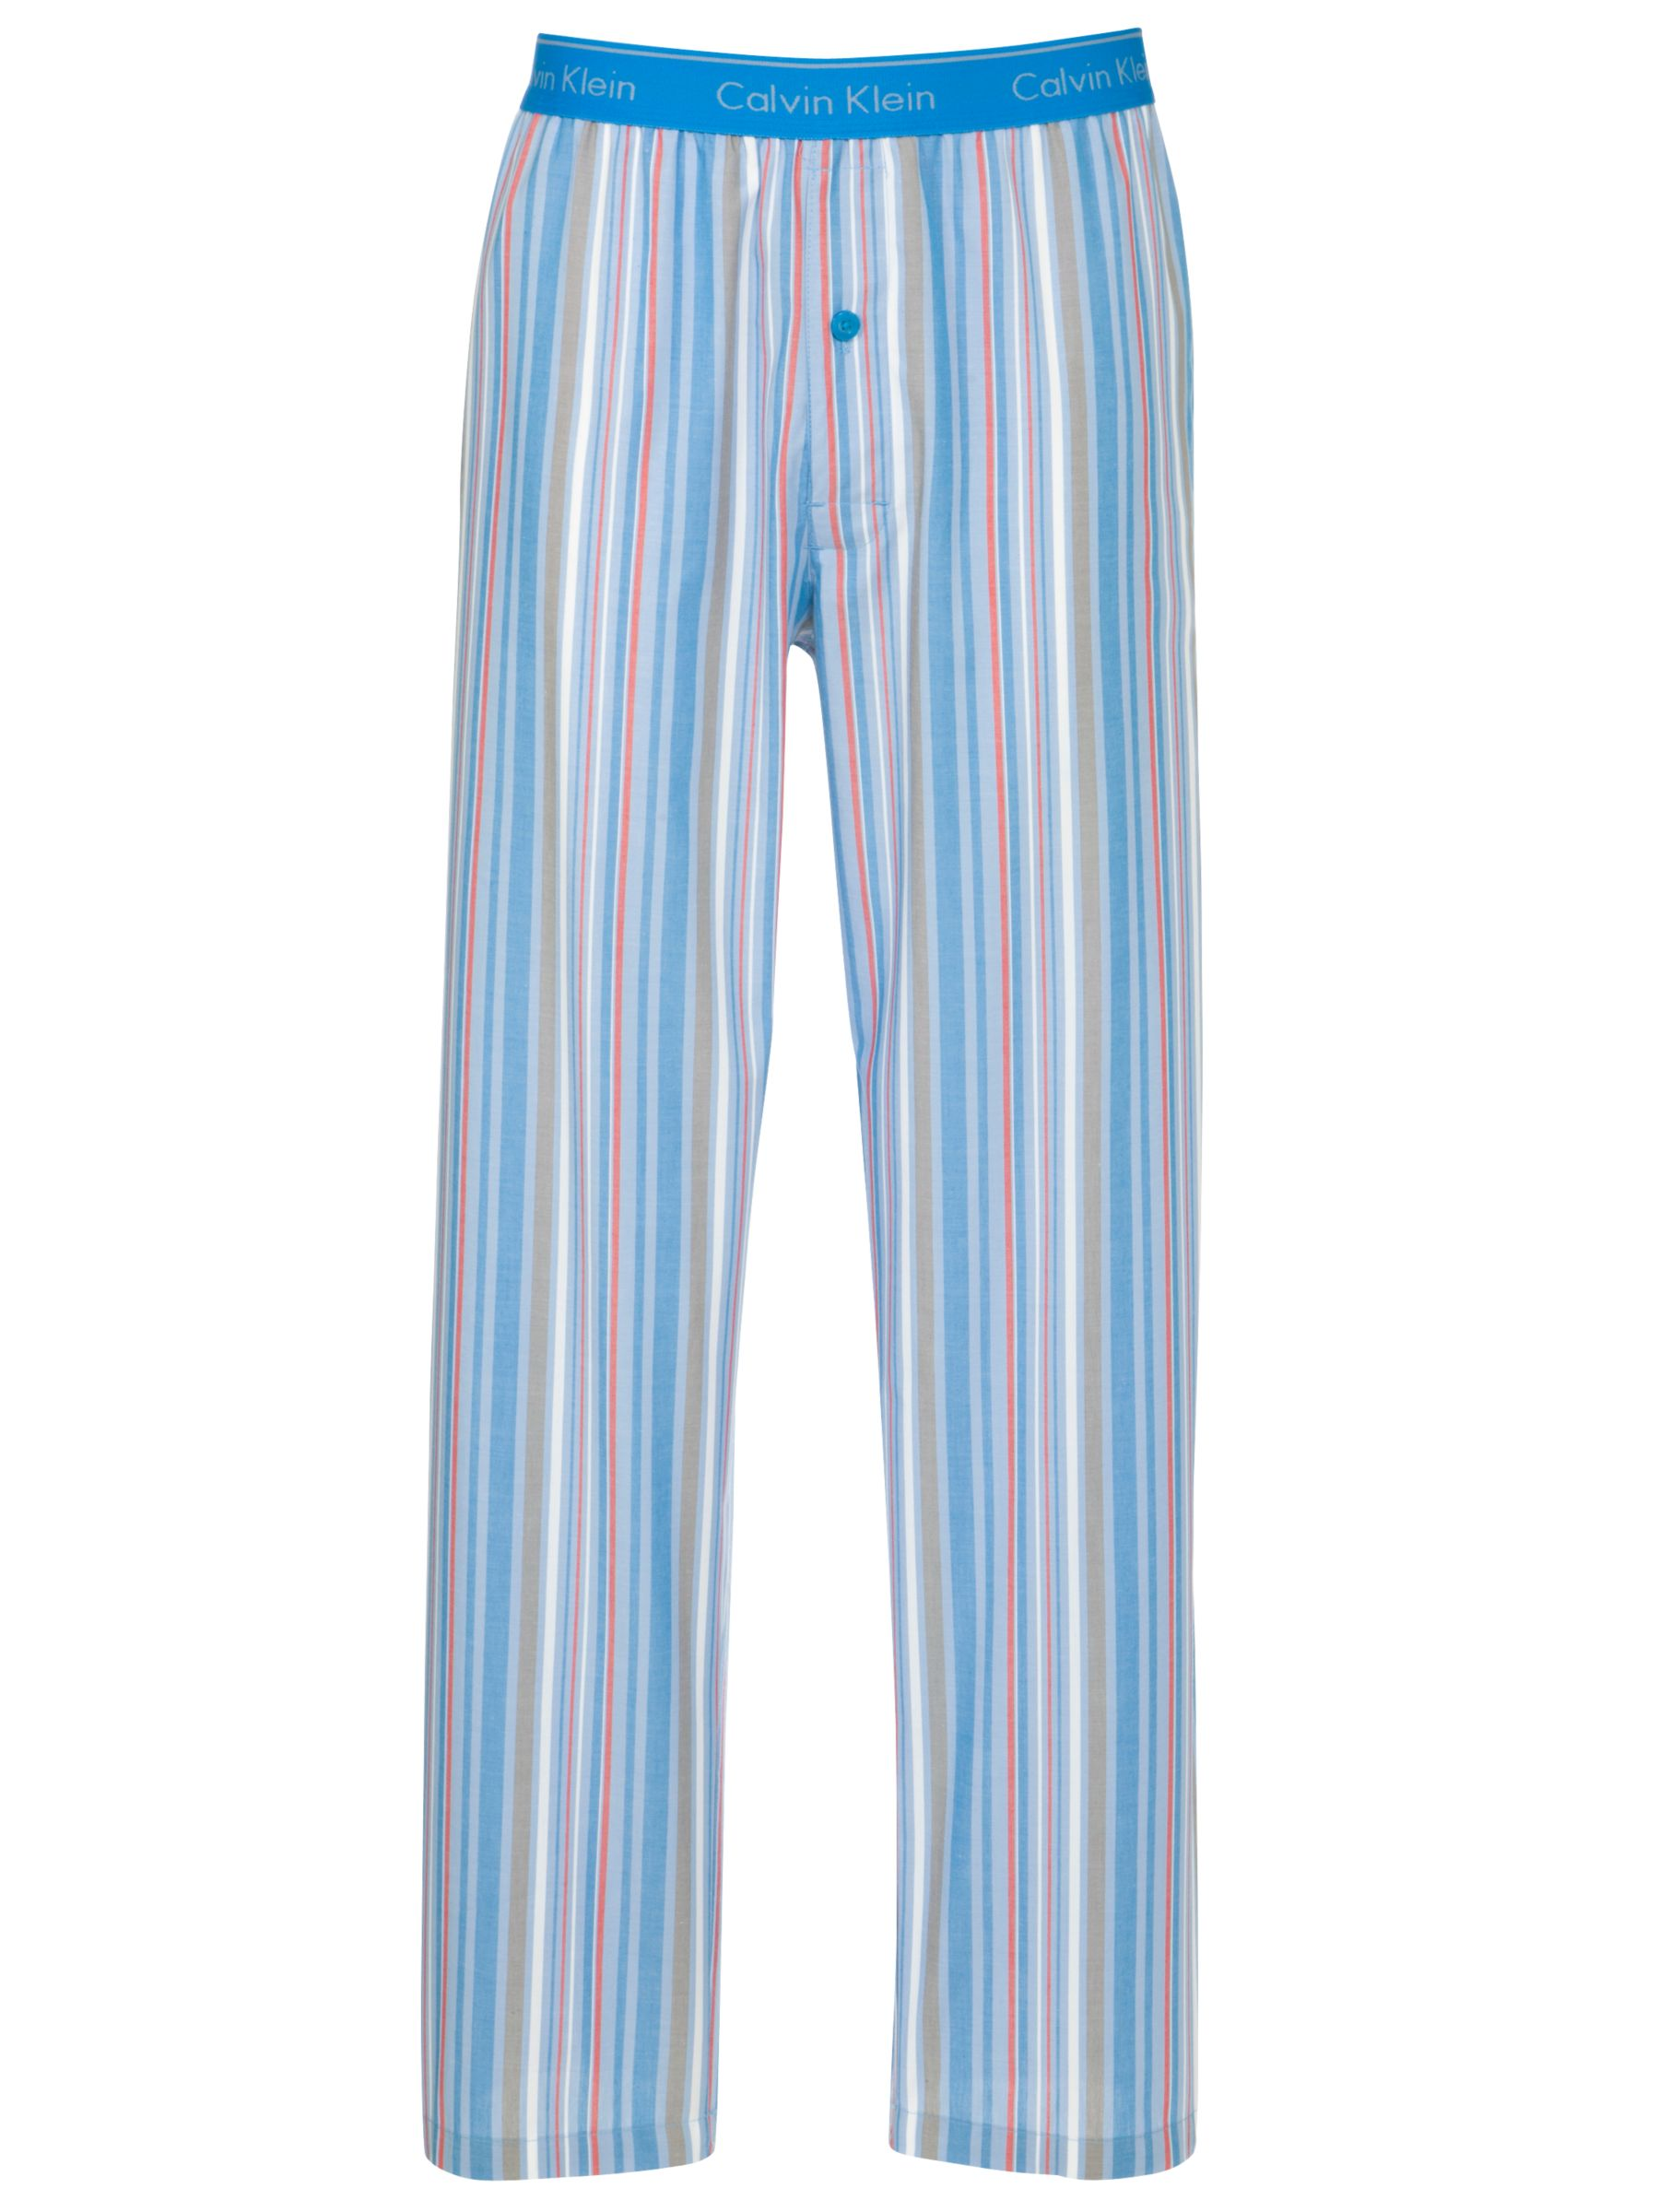 Calvin Klein Woven Traditional Stripe Pyjama Pants